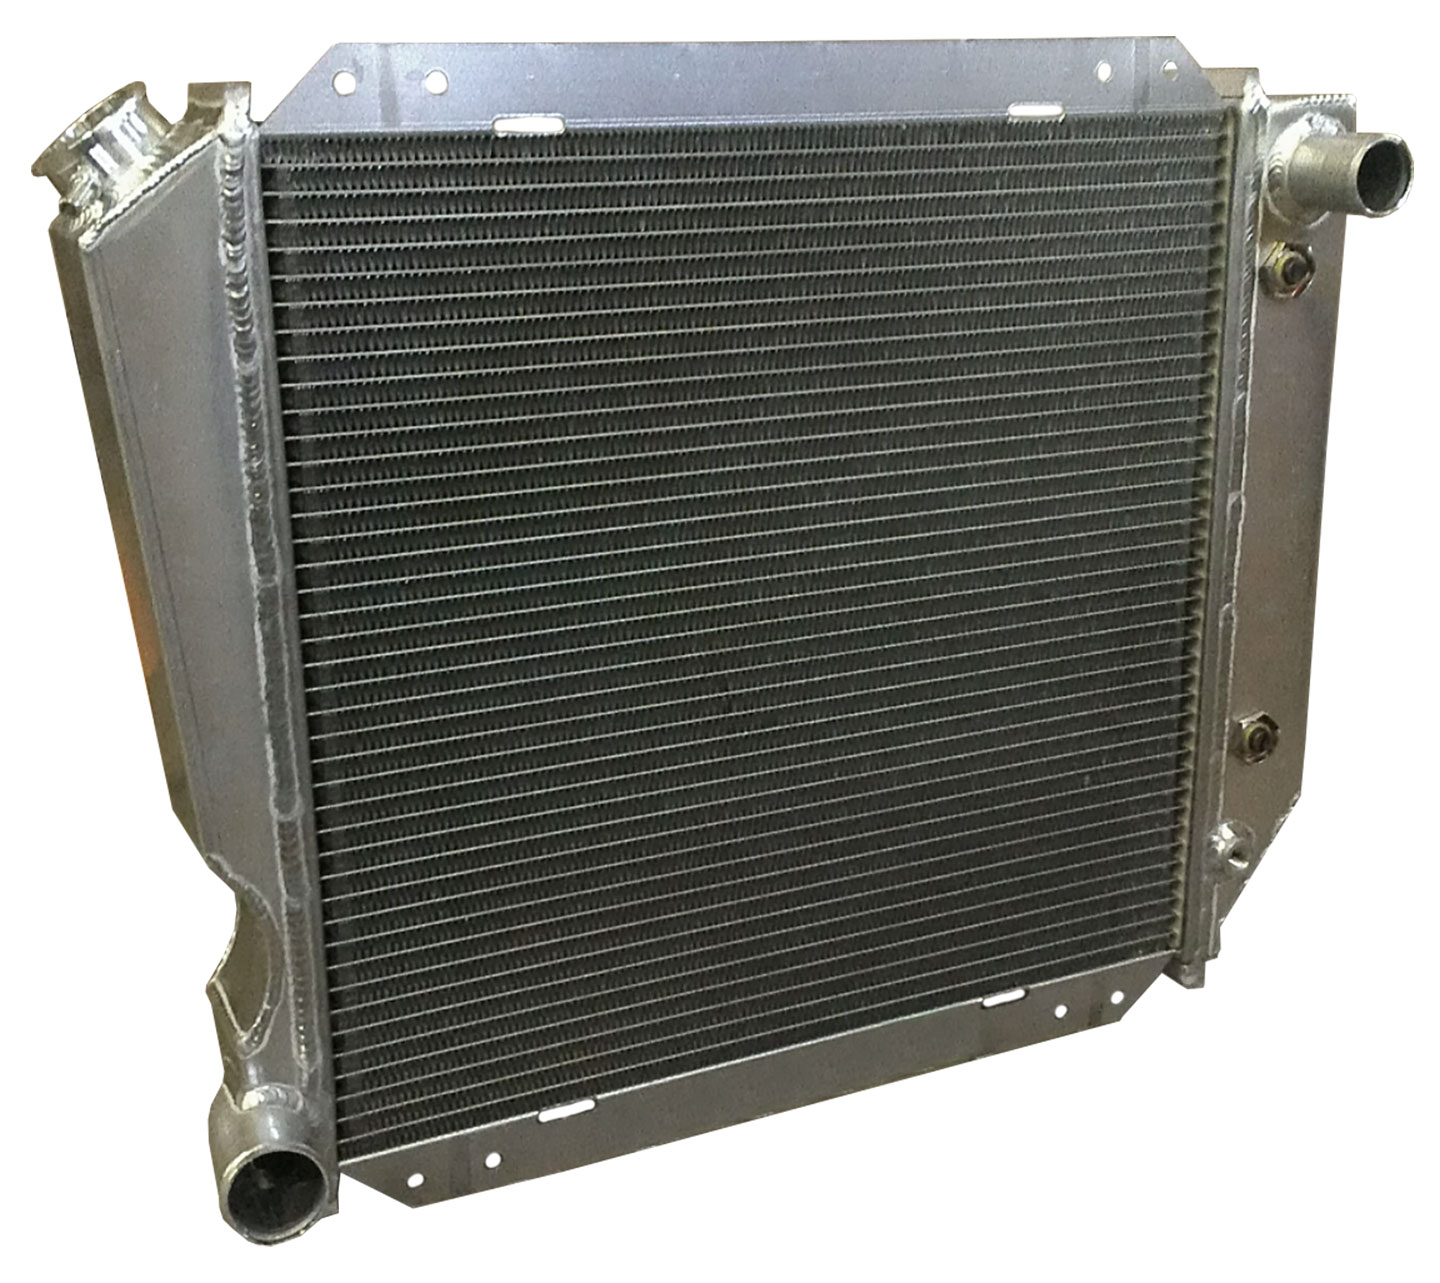 HD Aluminum Radiator - 289/302/351W V8, 66-77 Ford Bronco